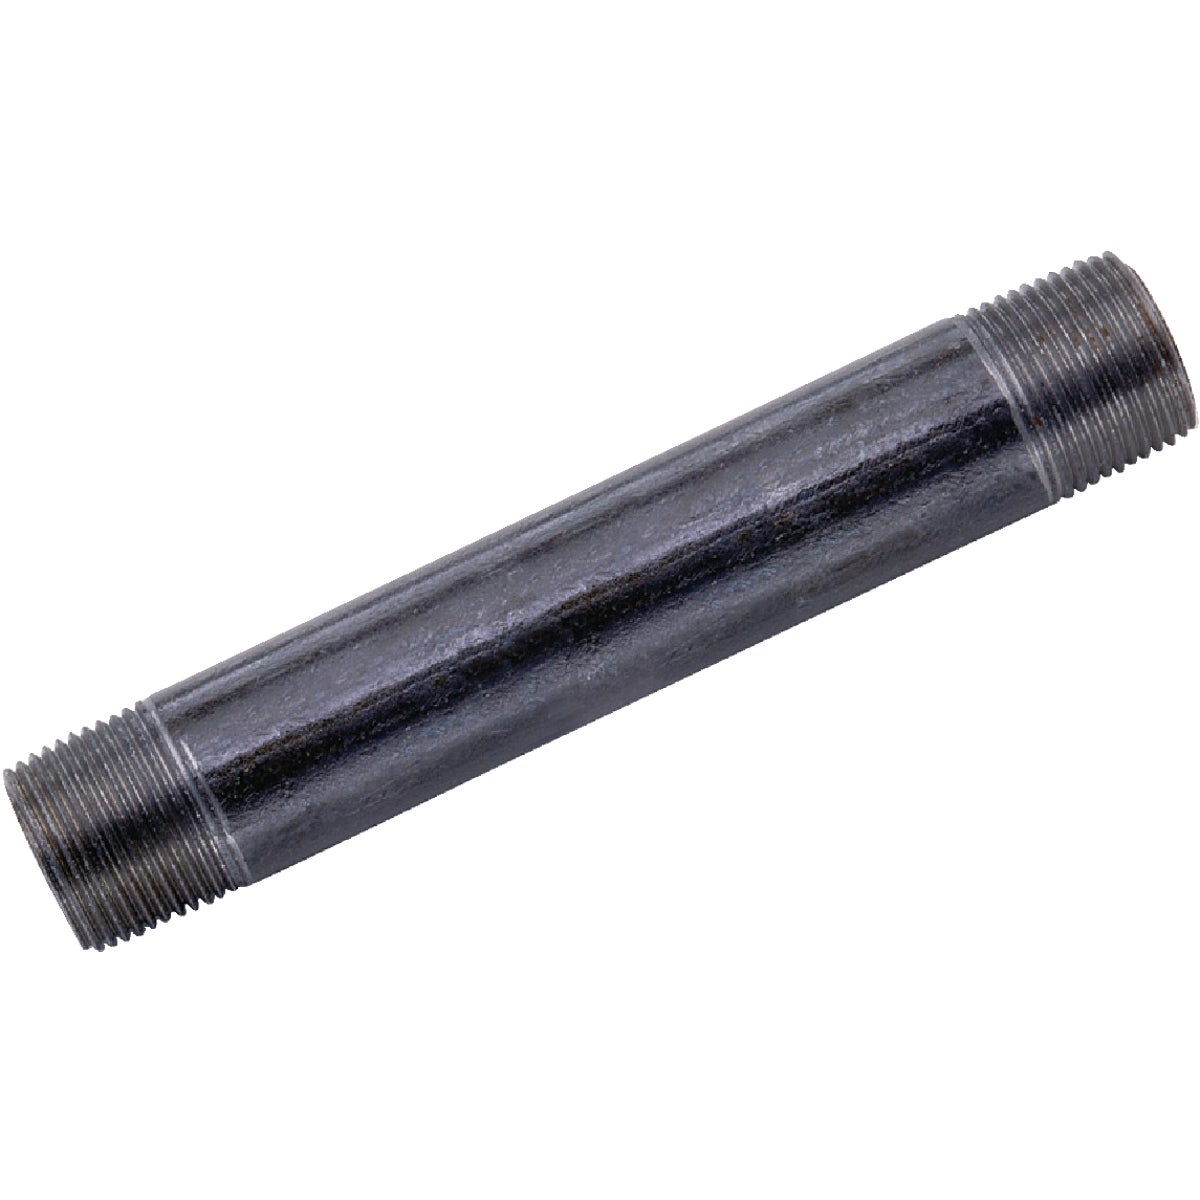 1-1/4X12 BLACK NIPPLE - 8700142808 by Anvil International